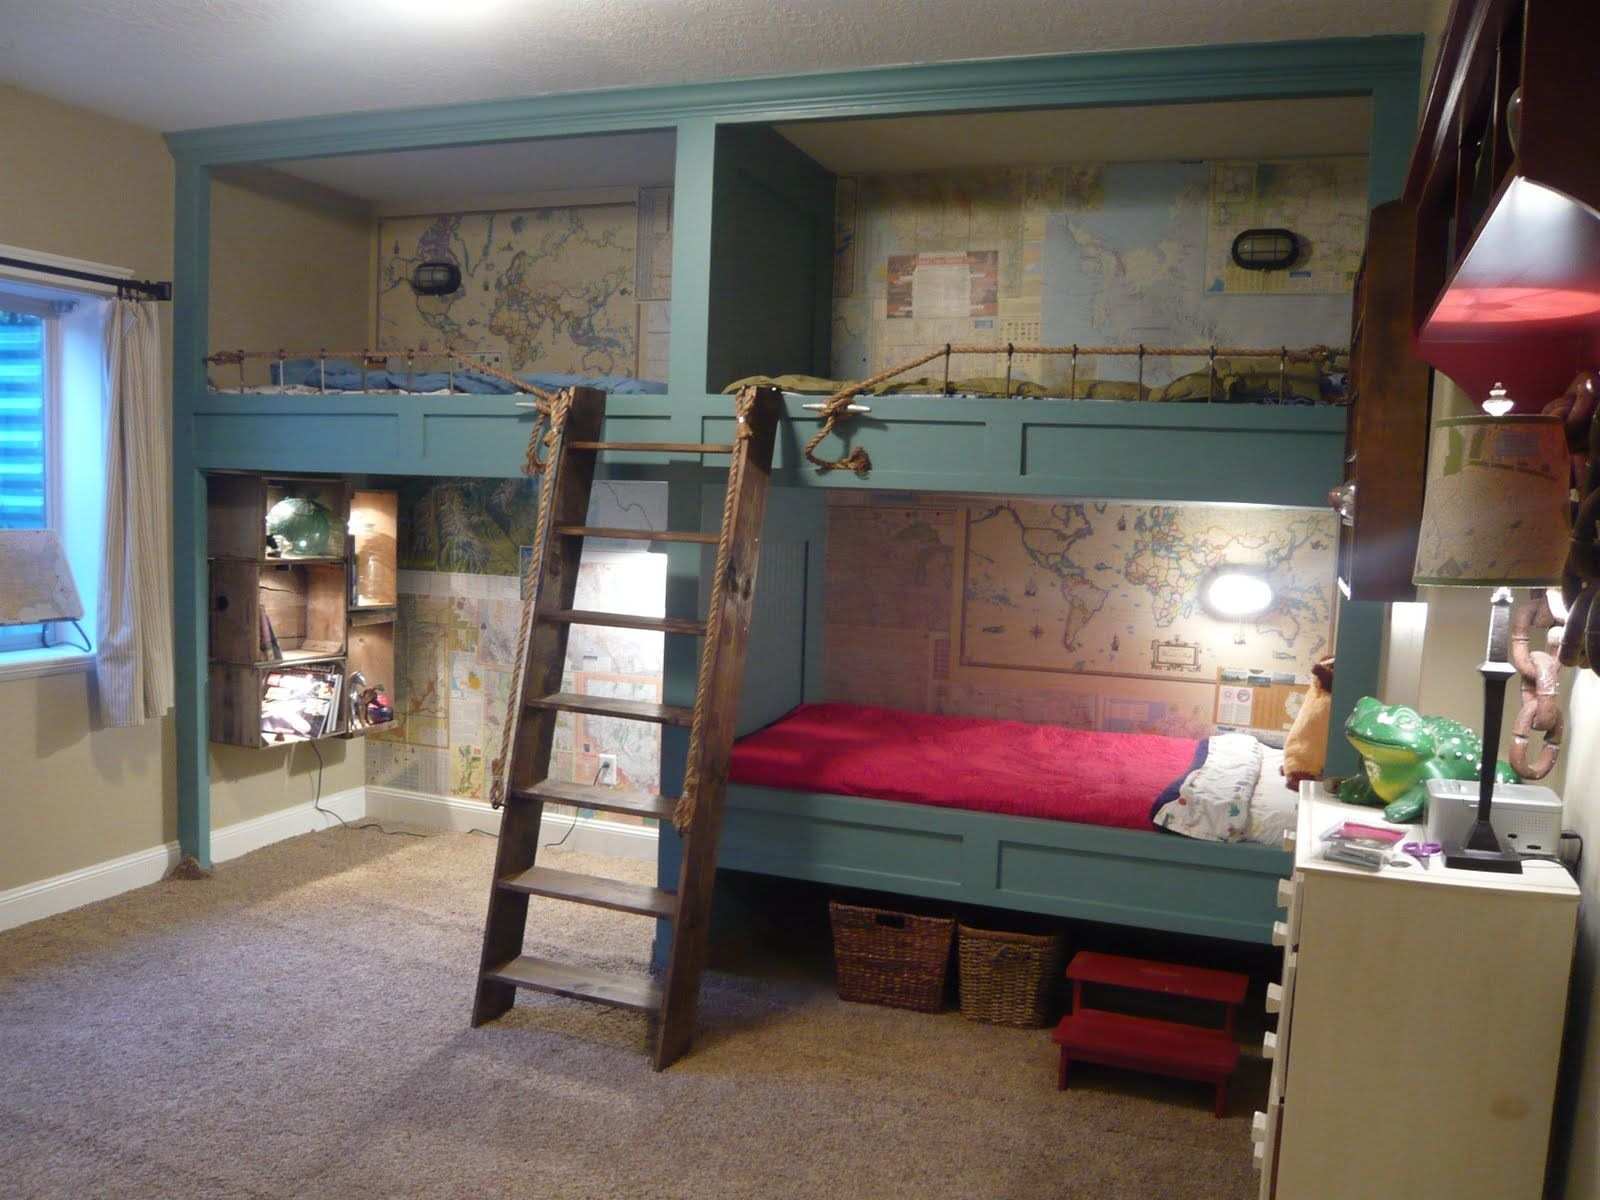 Unique Kid Rooms Kids Design 40 Cool Boys Room Ideas More Cool Kid Room Ideas